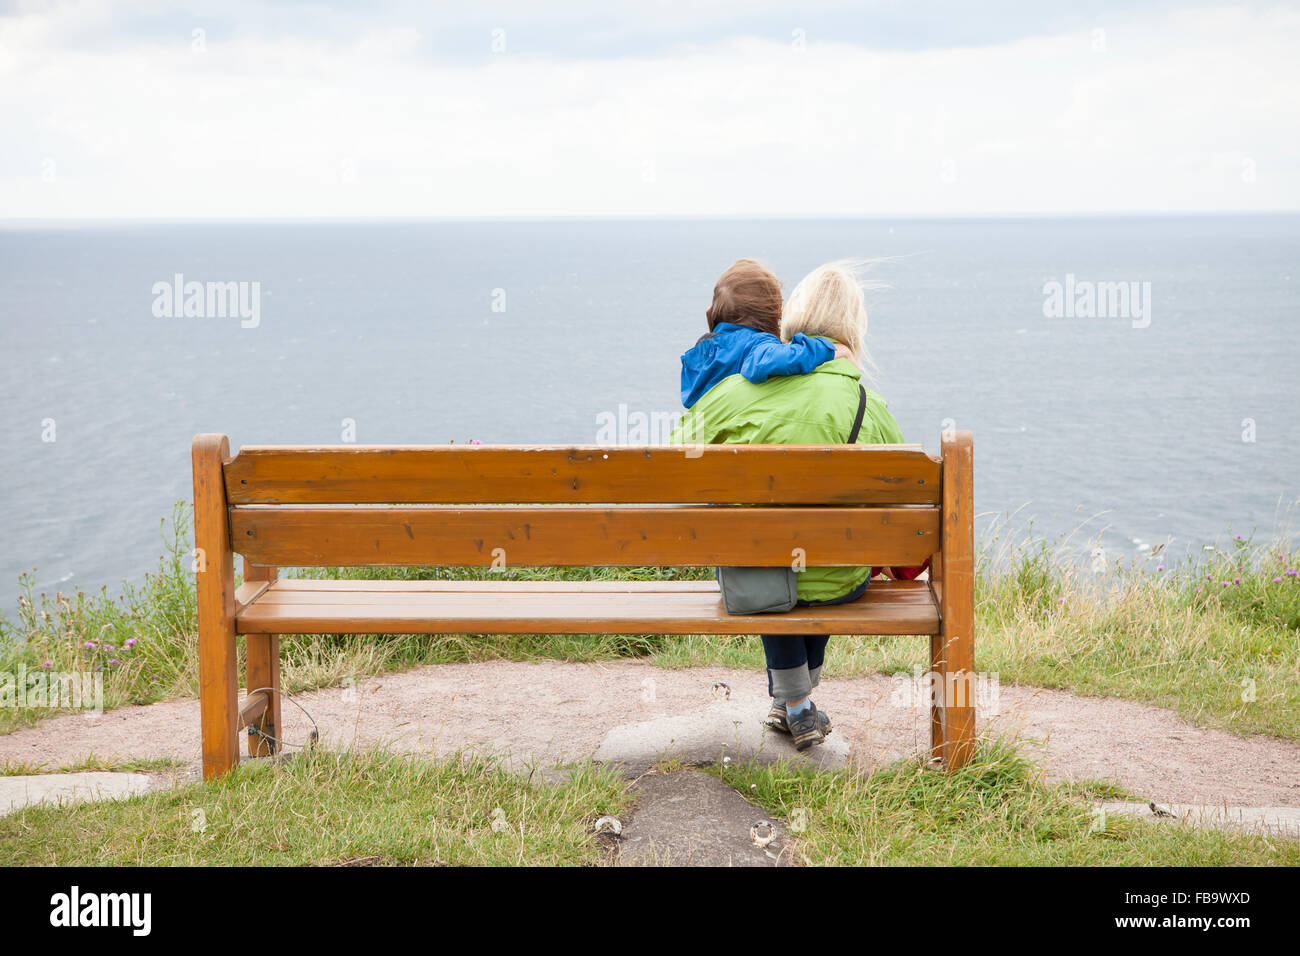 Sweden, Skane, Kullaberg, Kullen, Mother and son (8-9) sitting on beach and looking at sea - Stock Image